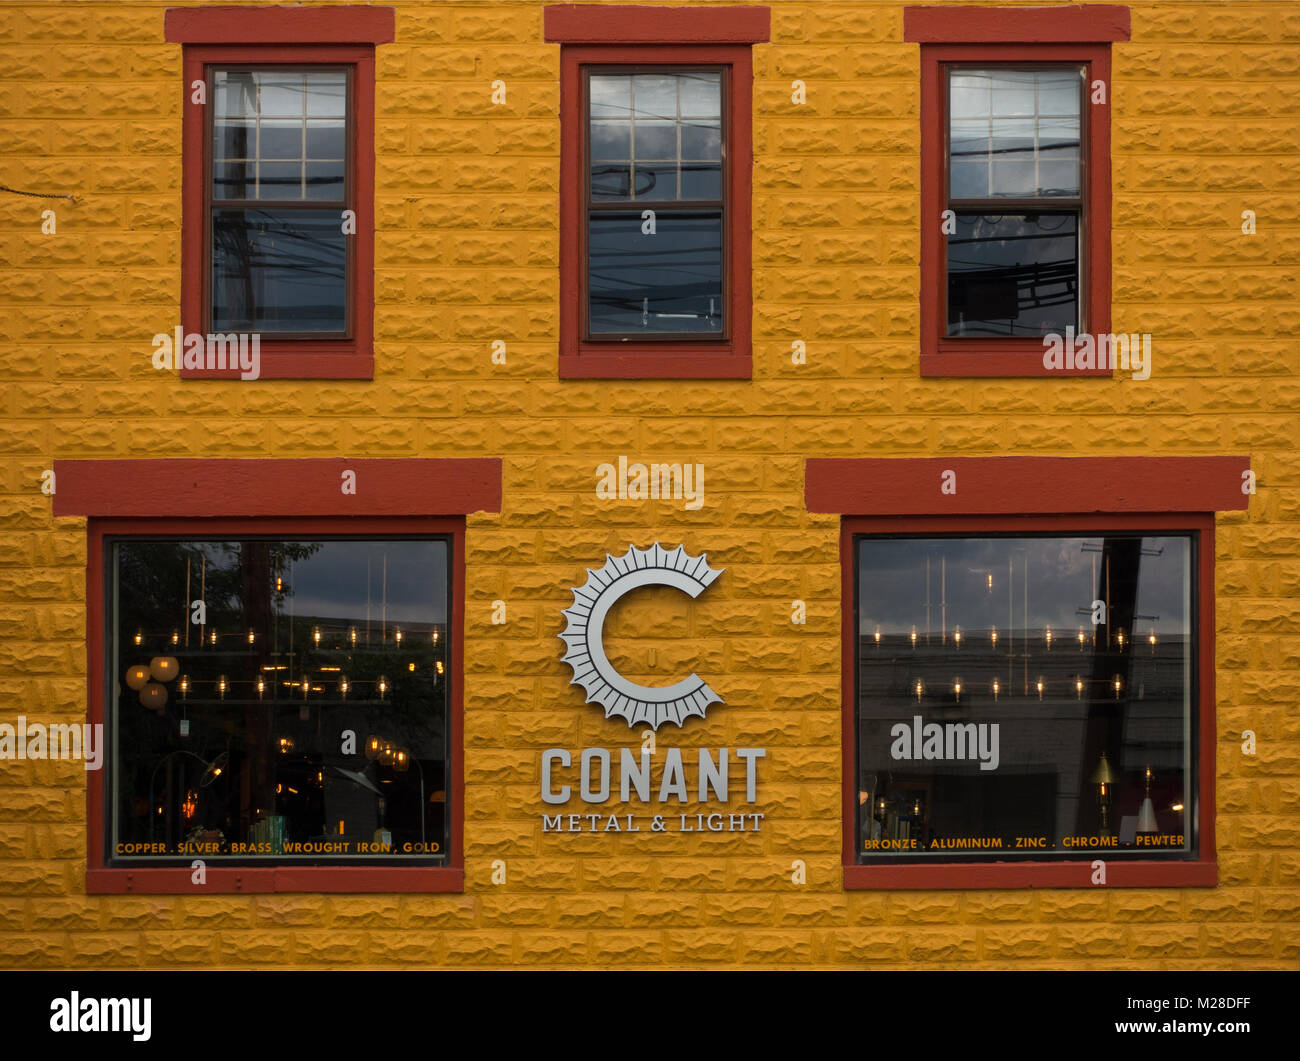 conant metal and light burlington vt stock photo 173519235 alamy